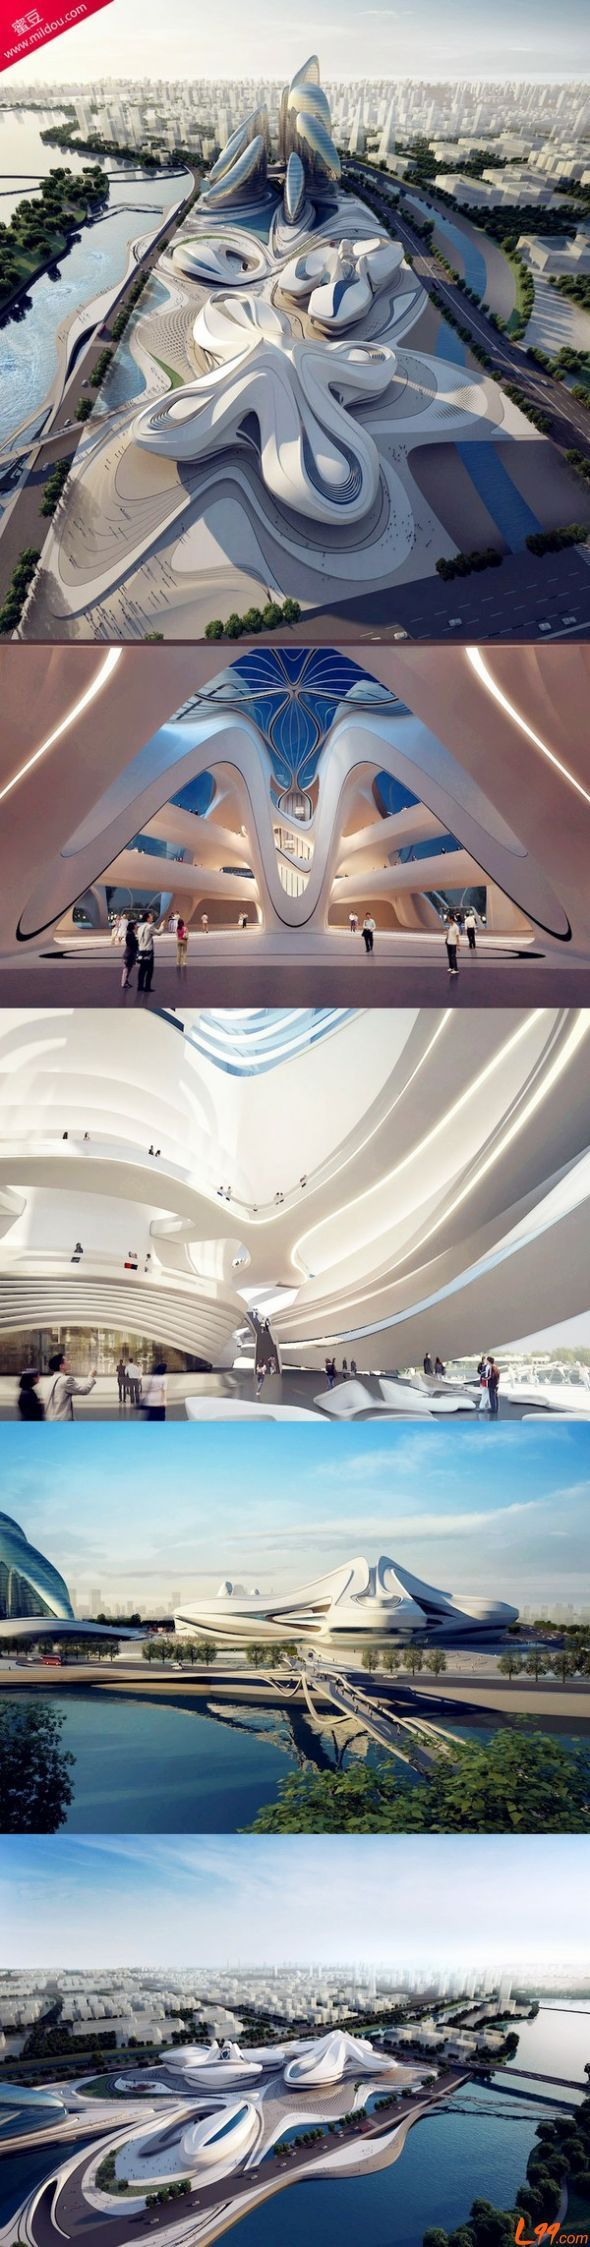 Futuristic architecture will be finished in 2015, in China.